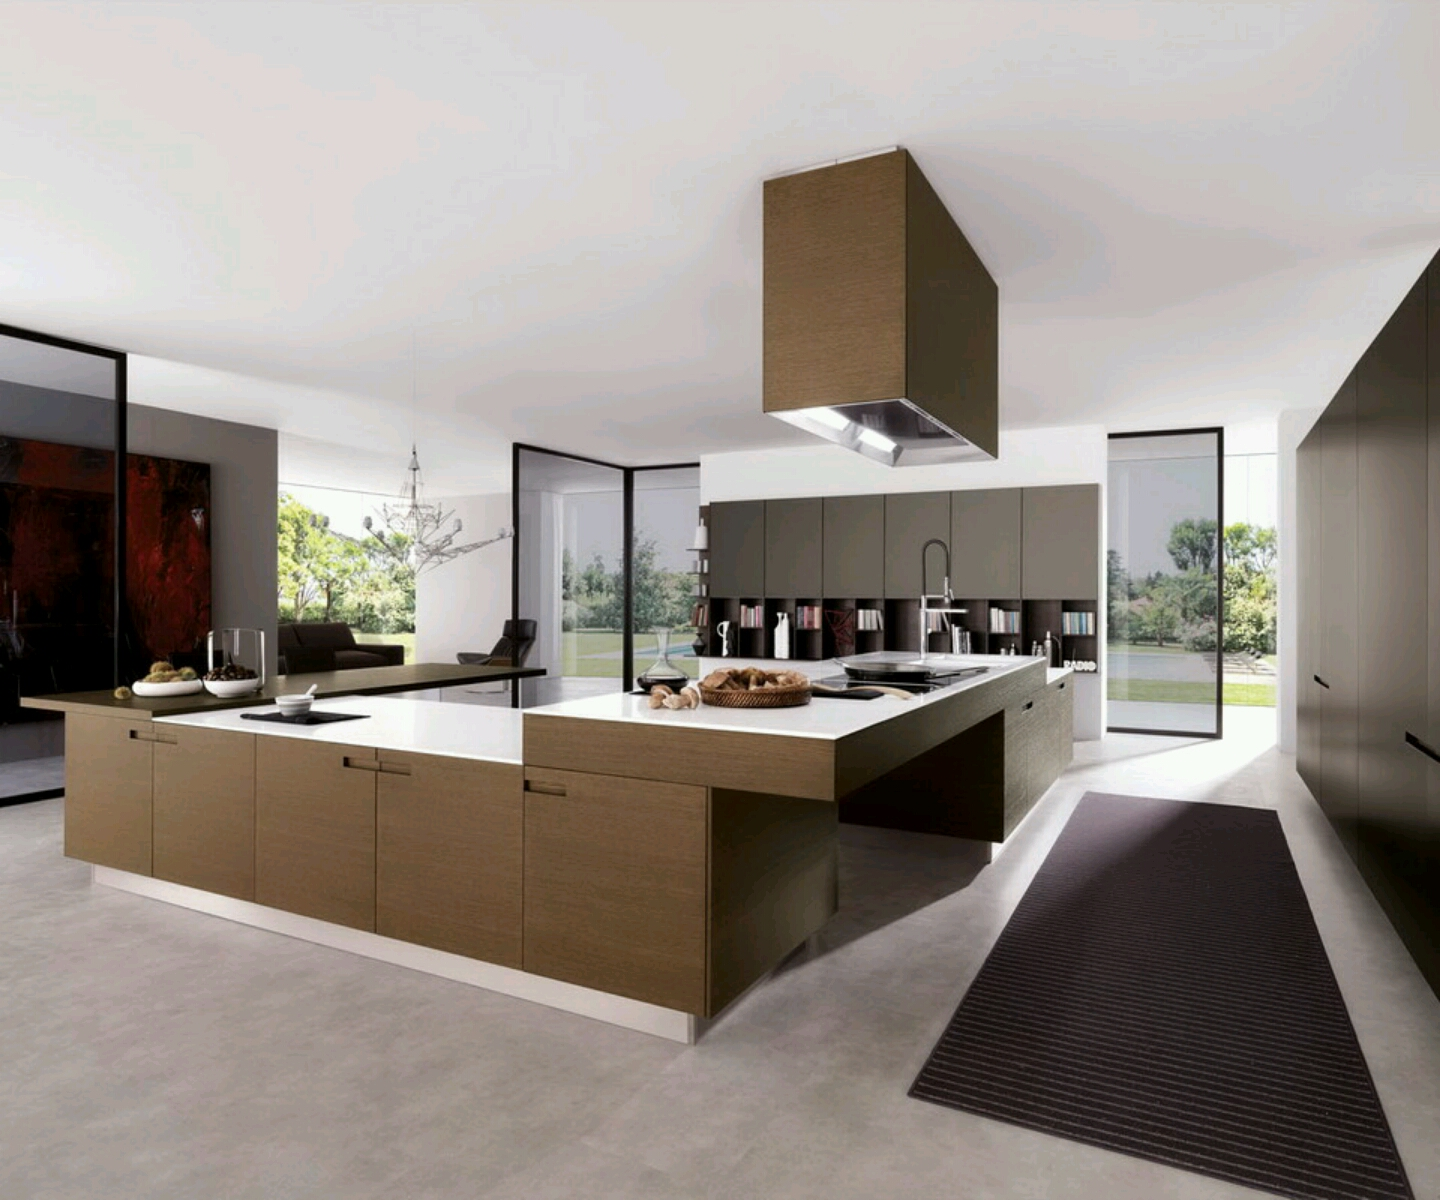 New home designs latest.: Modern kitchen cabinets designs ... on Modern Kitchen Design  id=22528